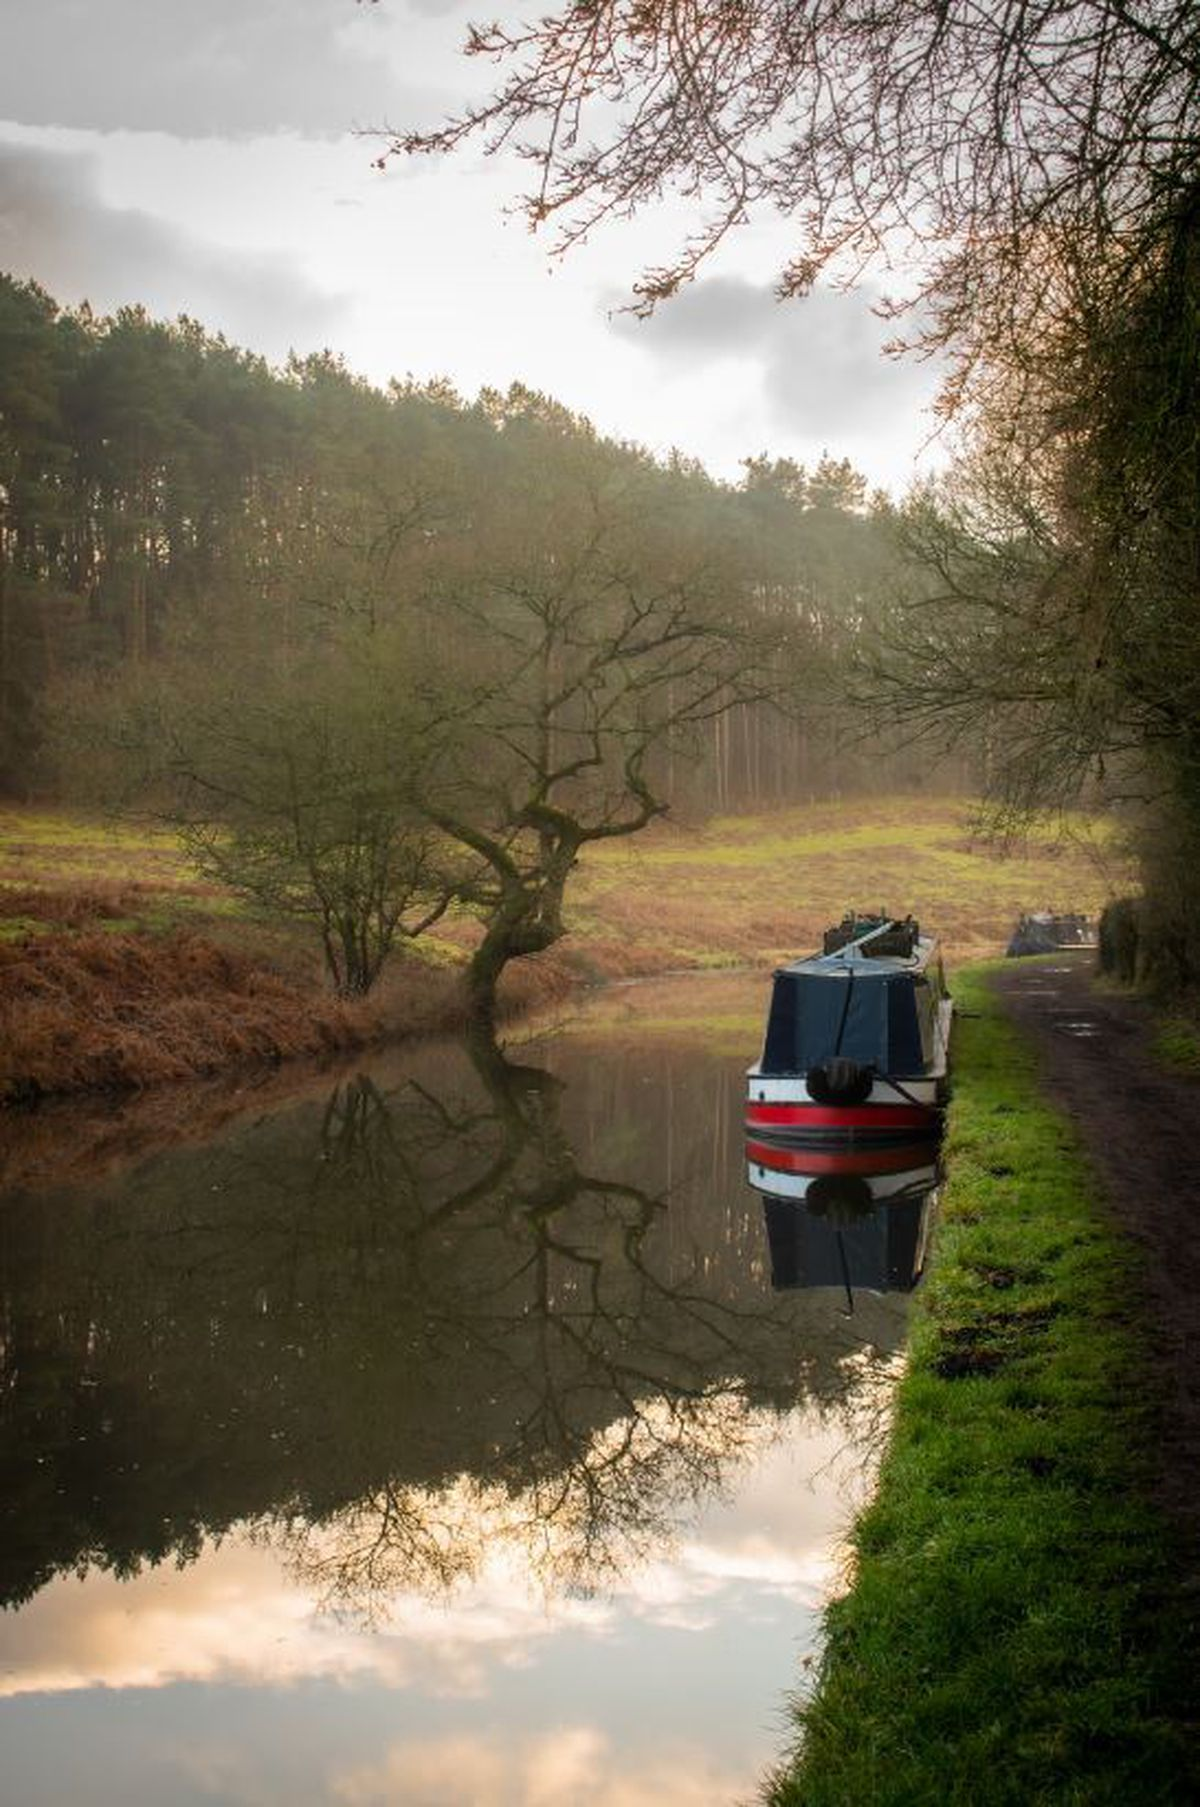 Stourton Canal by Luke Groves posting as @flashin_in_public on Instagram